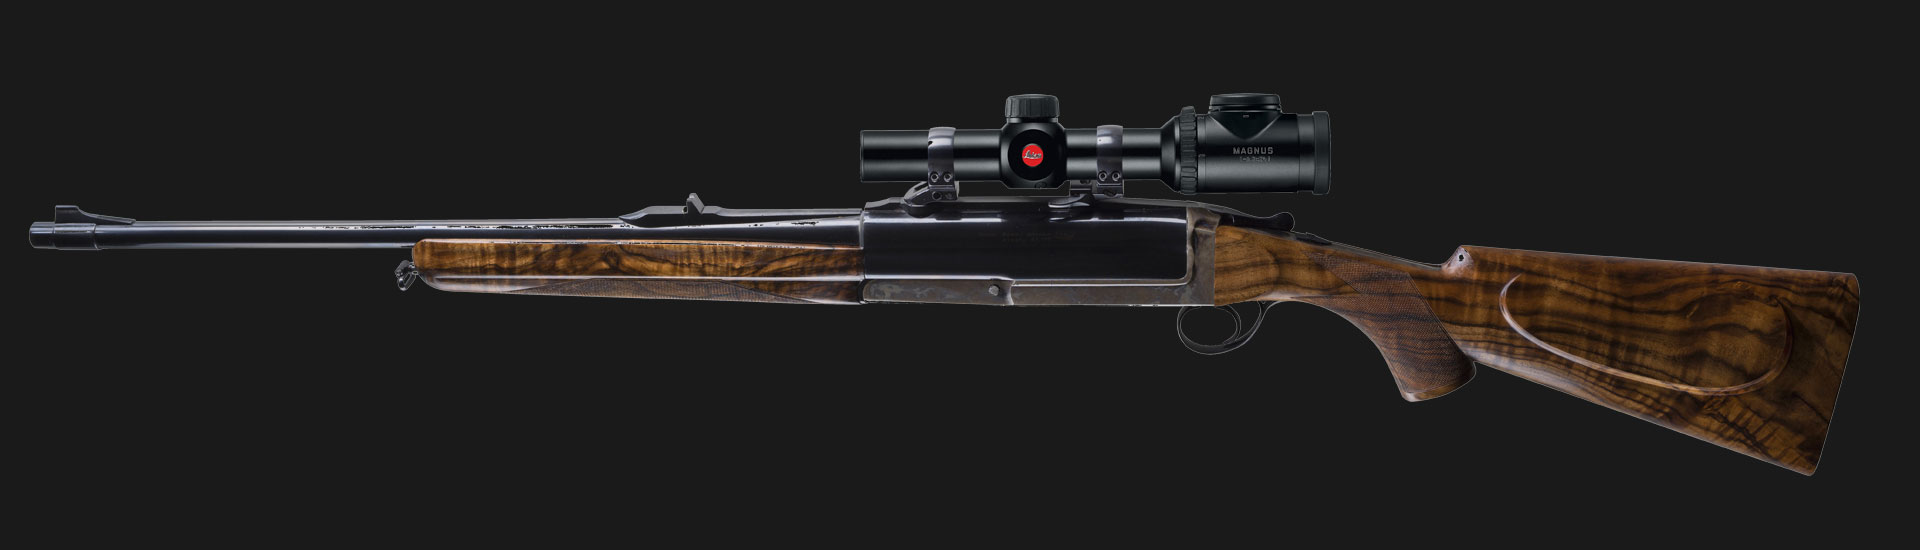 Semi-automatique  Cosmi Rigato